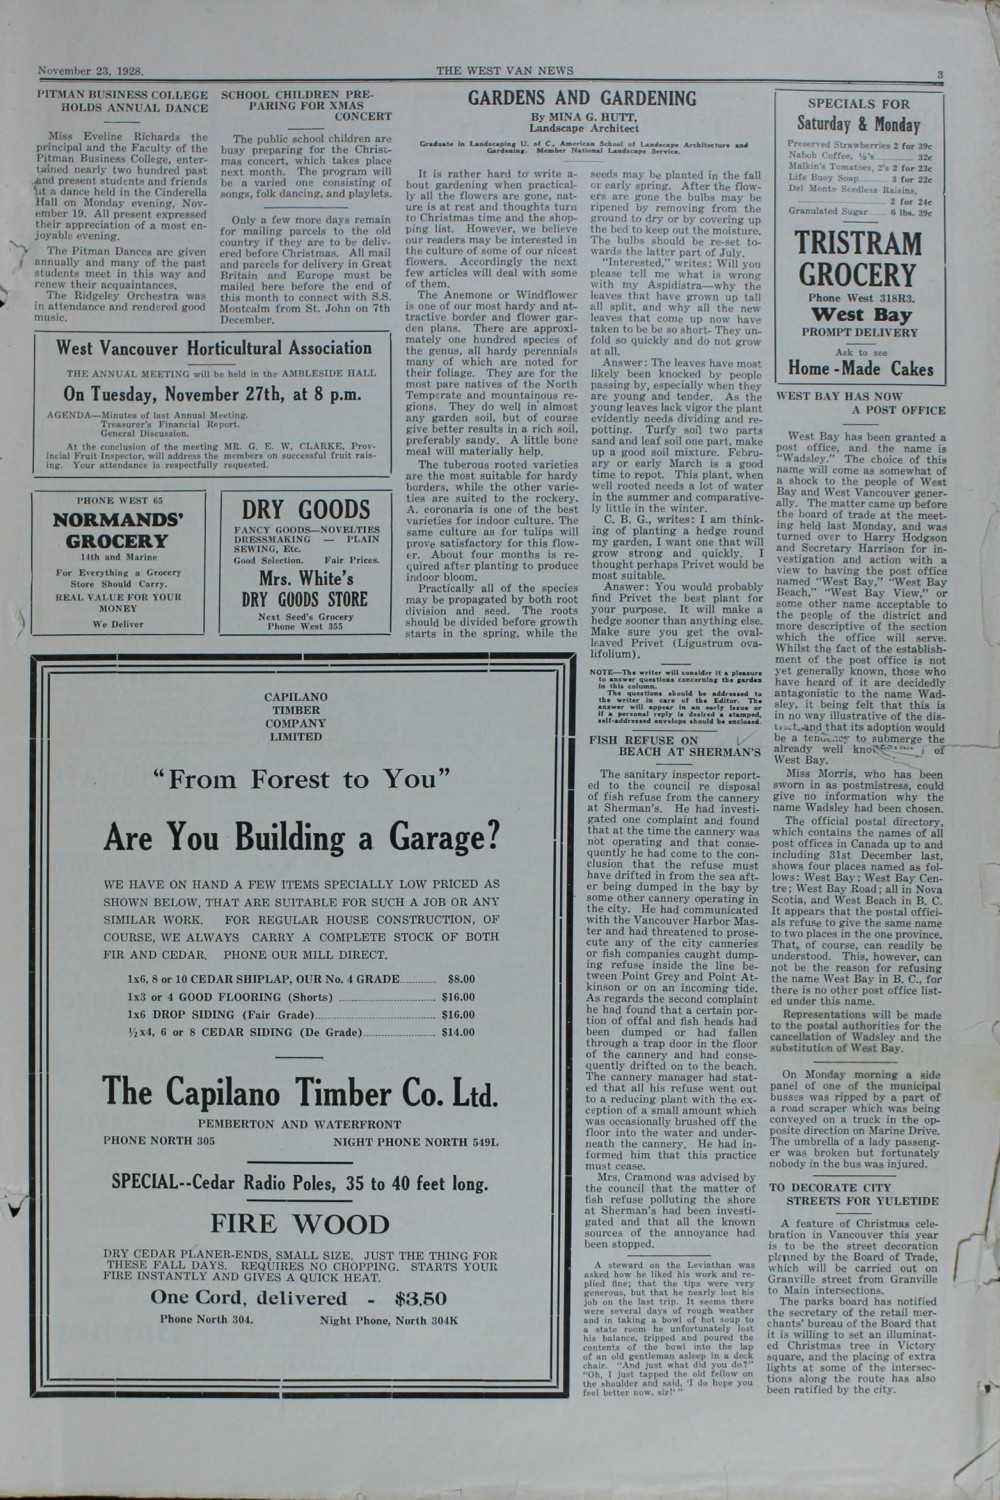 West Van. News (West Vancouver), 23 Nov 1928